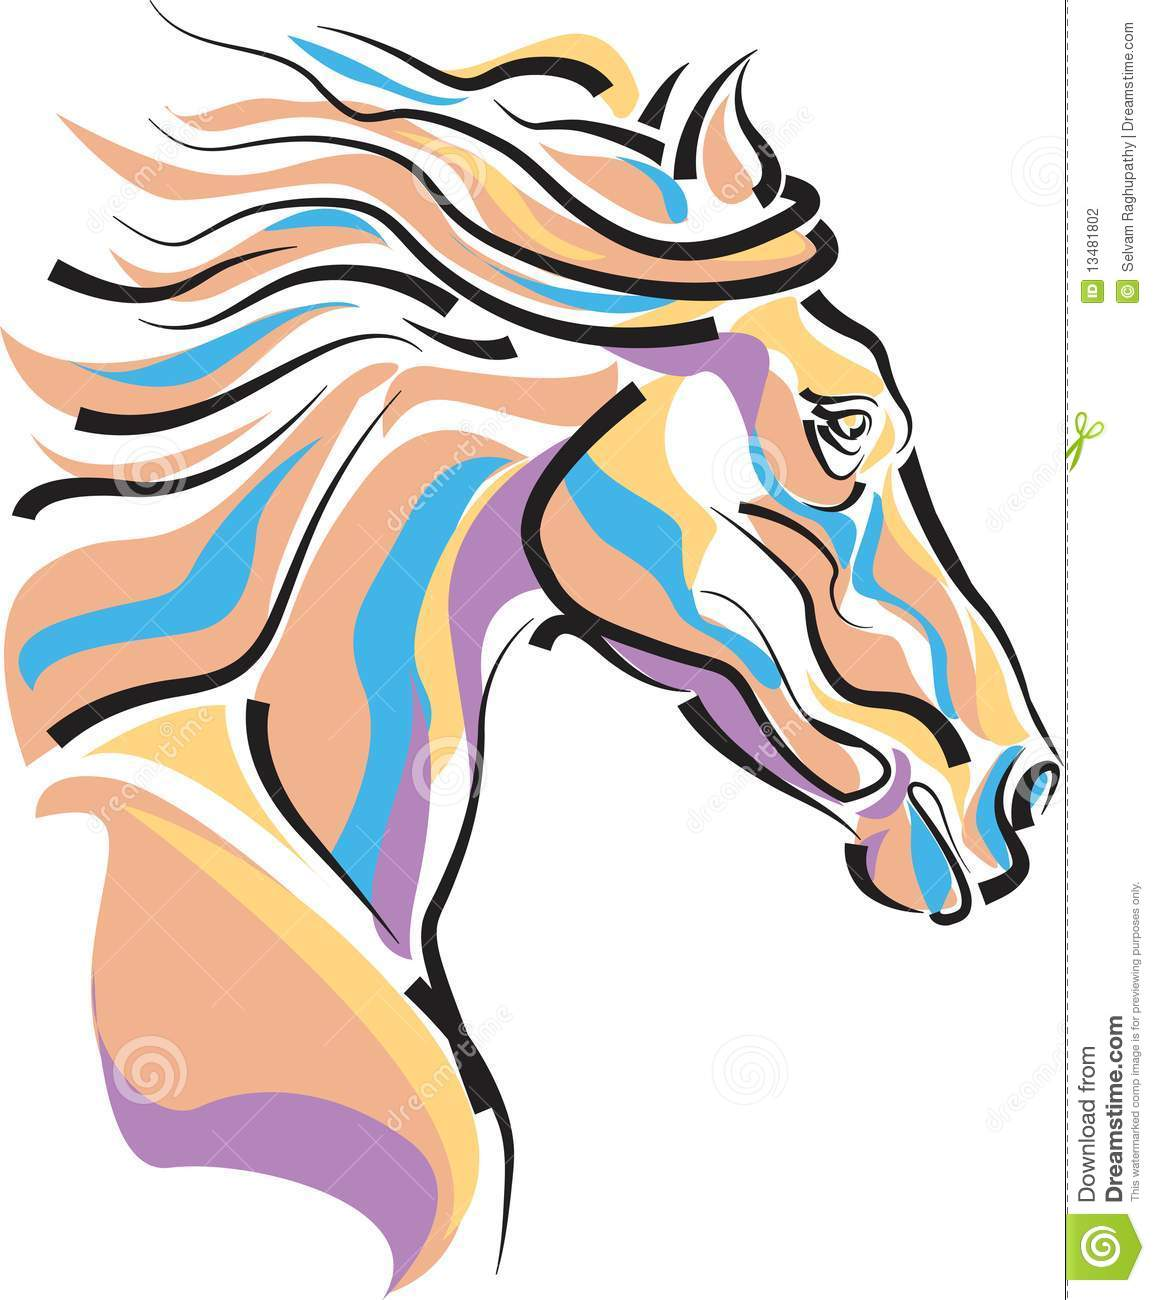 horse-head-13481802 Easy Colorful Drawings